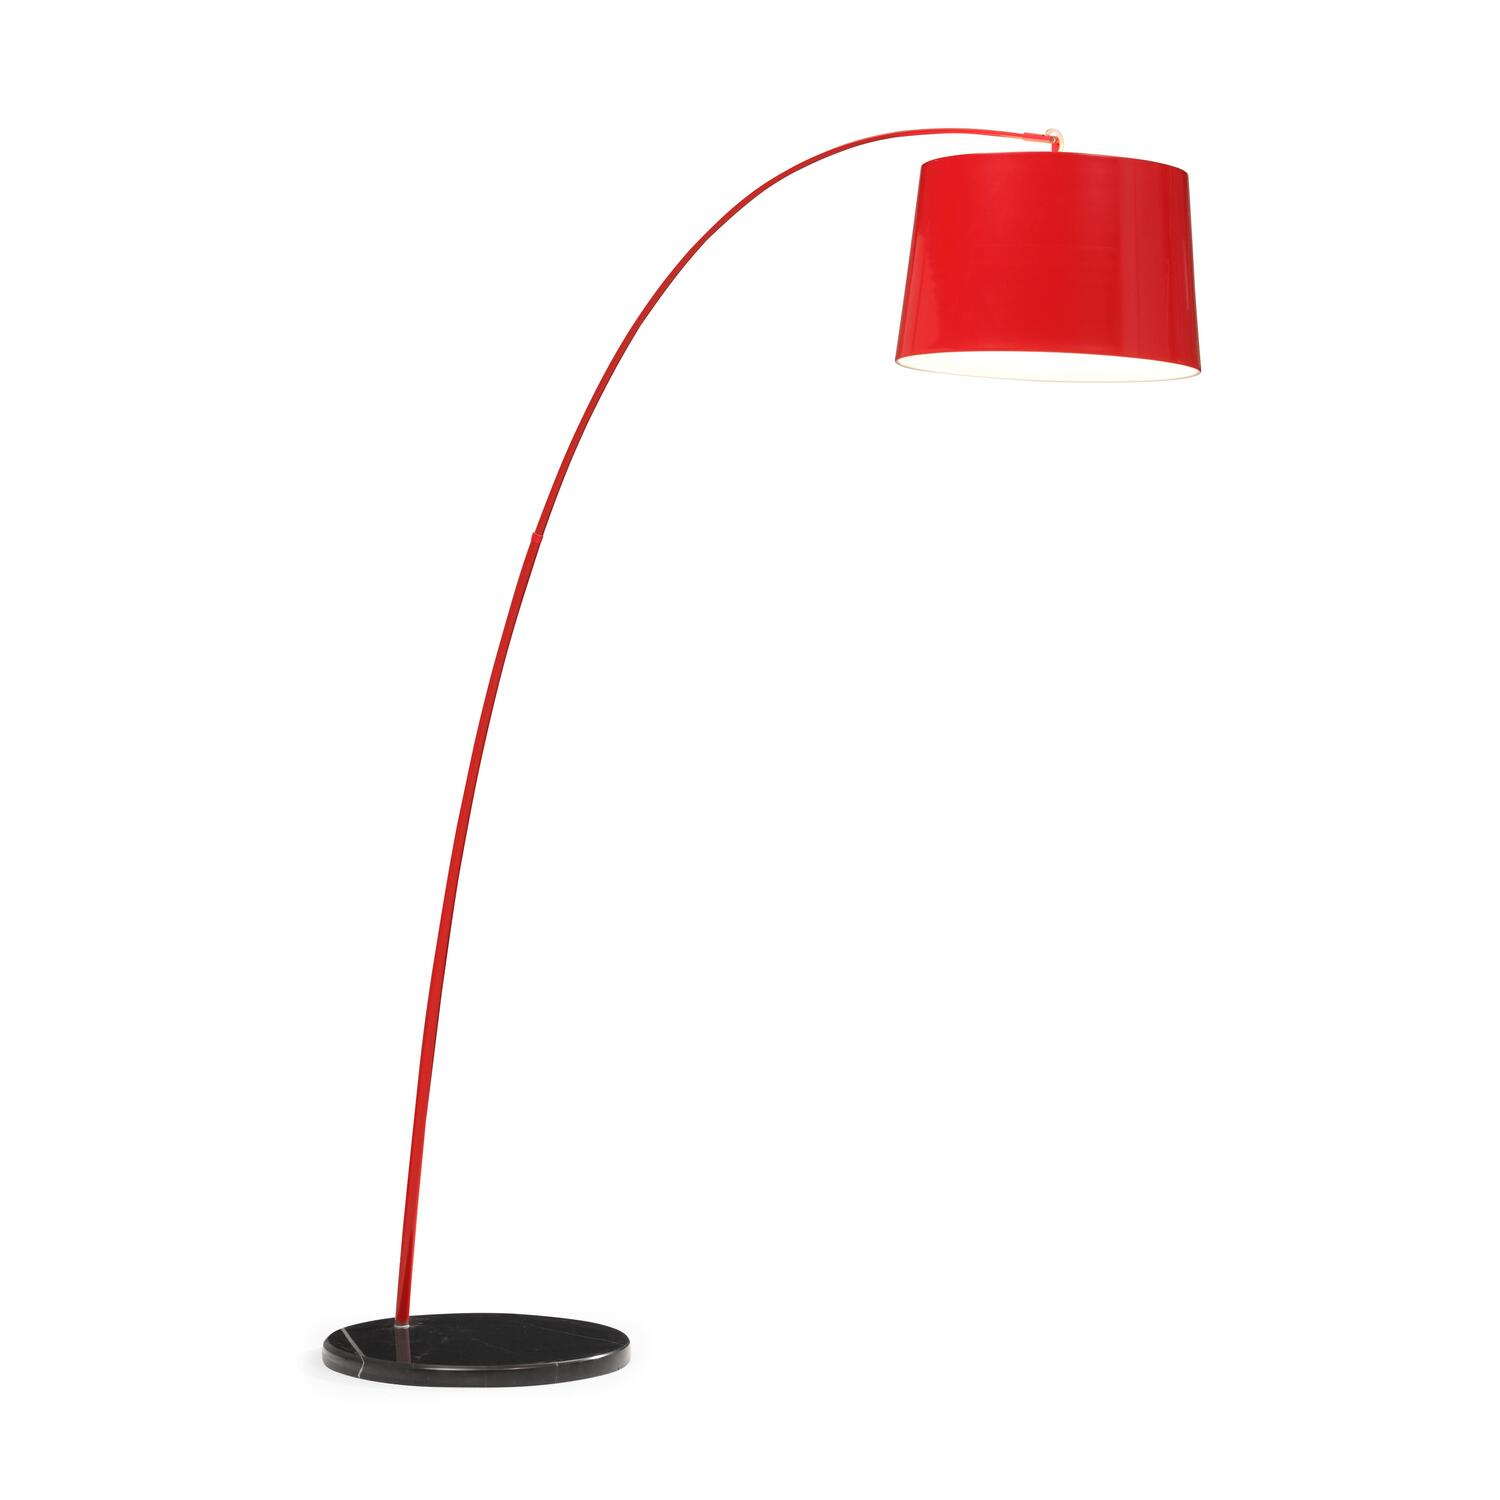 Zuo Modern Twisty Floor Lamp By Oj Commerce 770 00